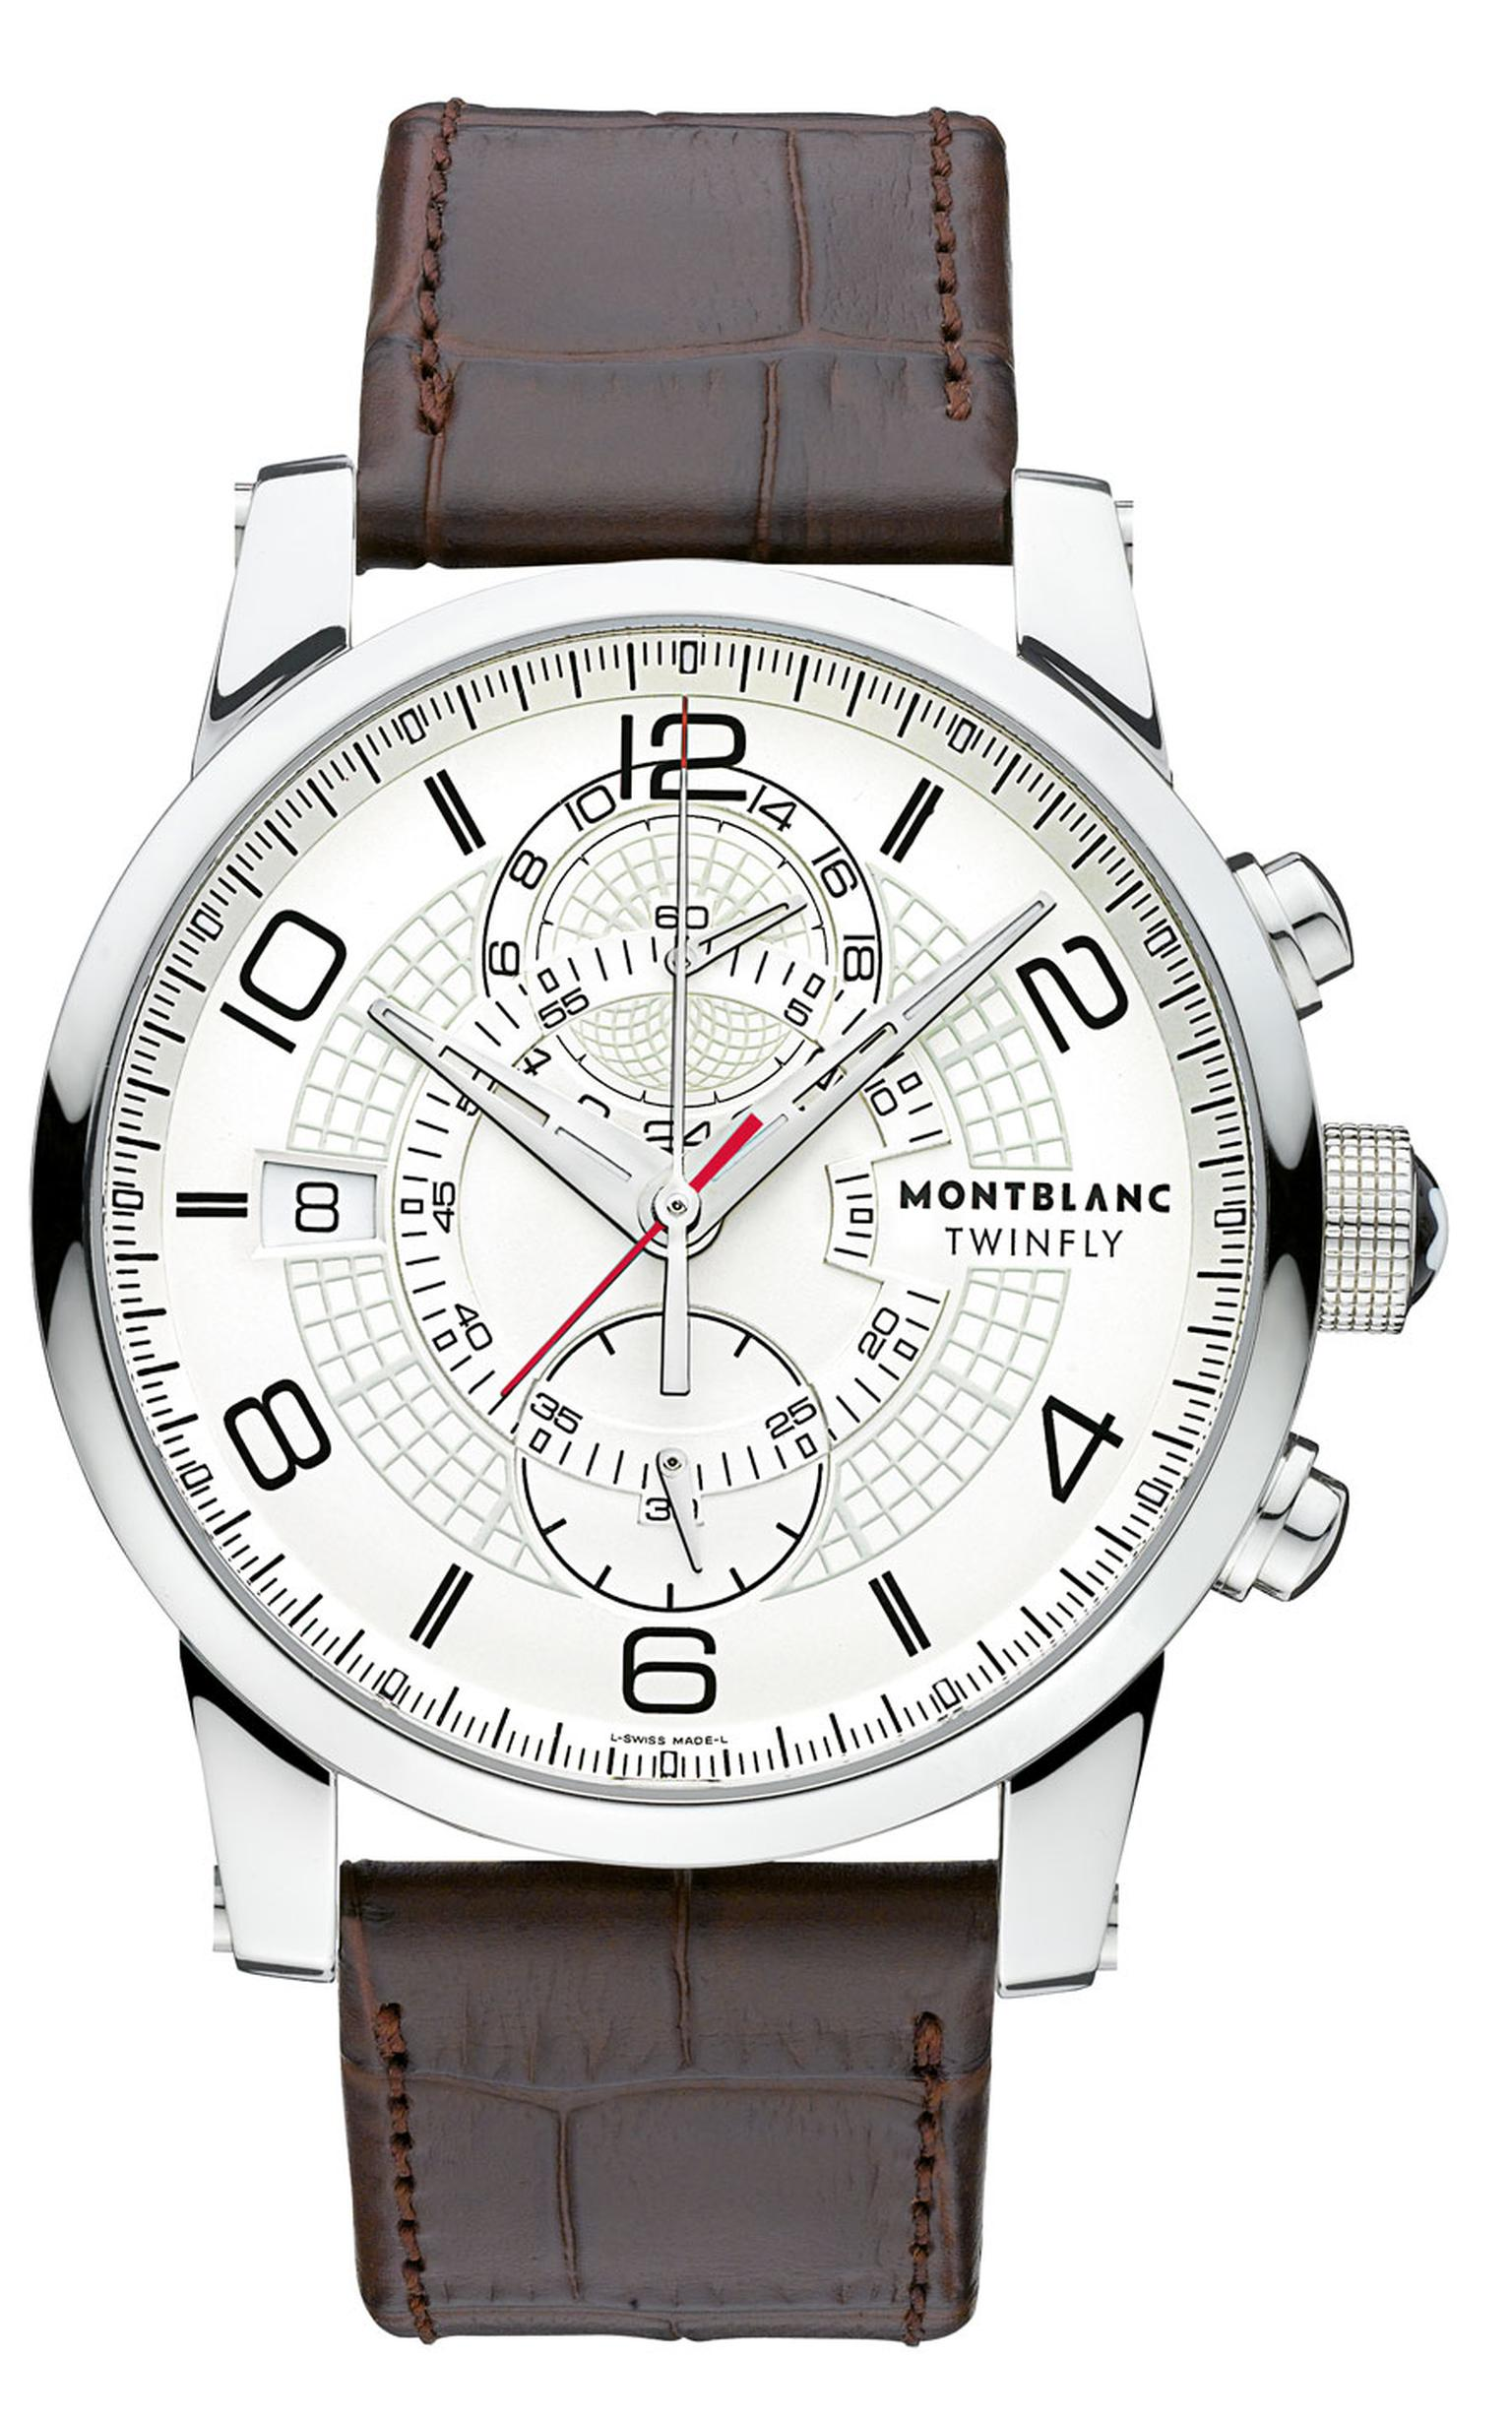 Montblanc-TimeWalker-TwinFly-Chronograph-front